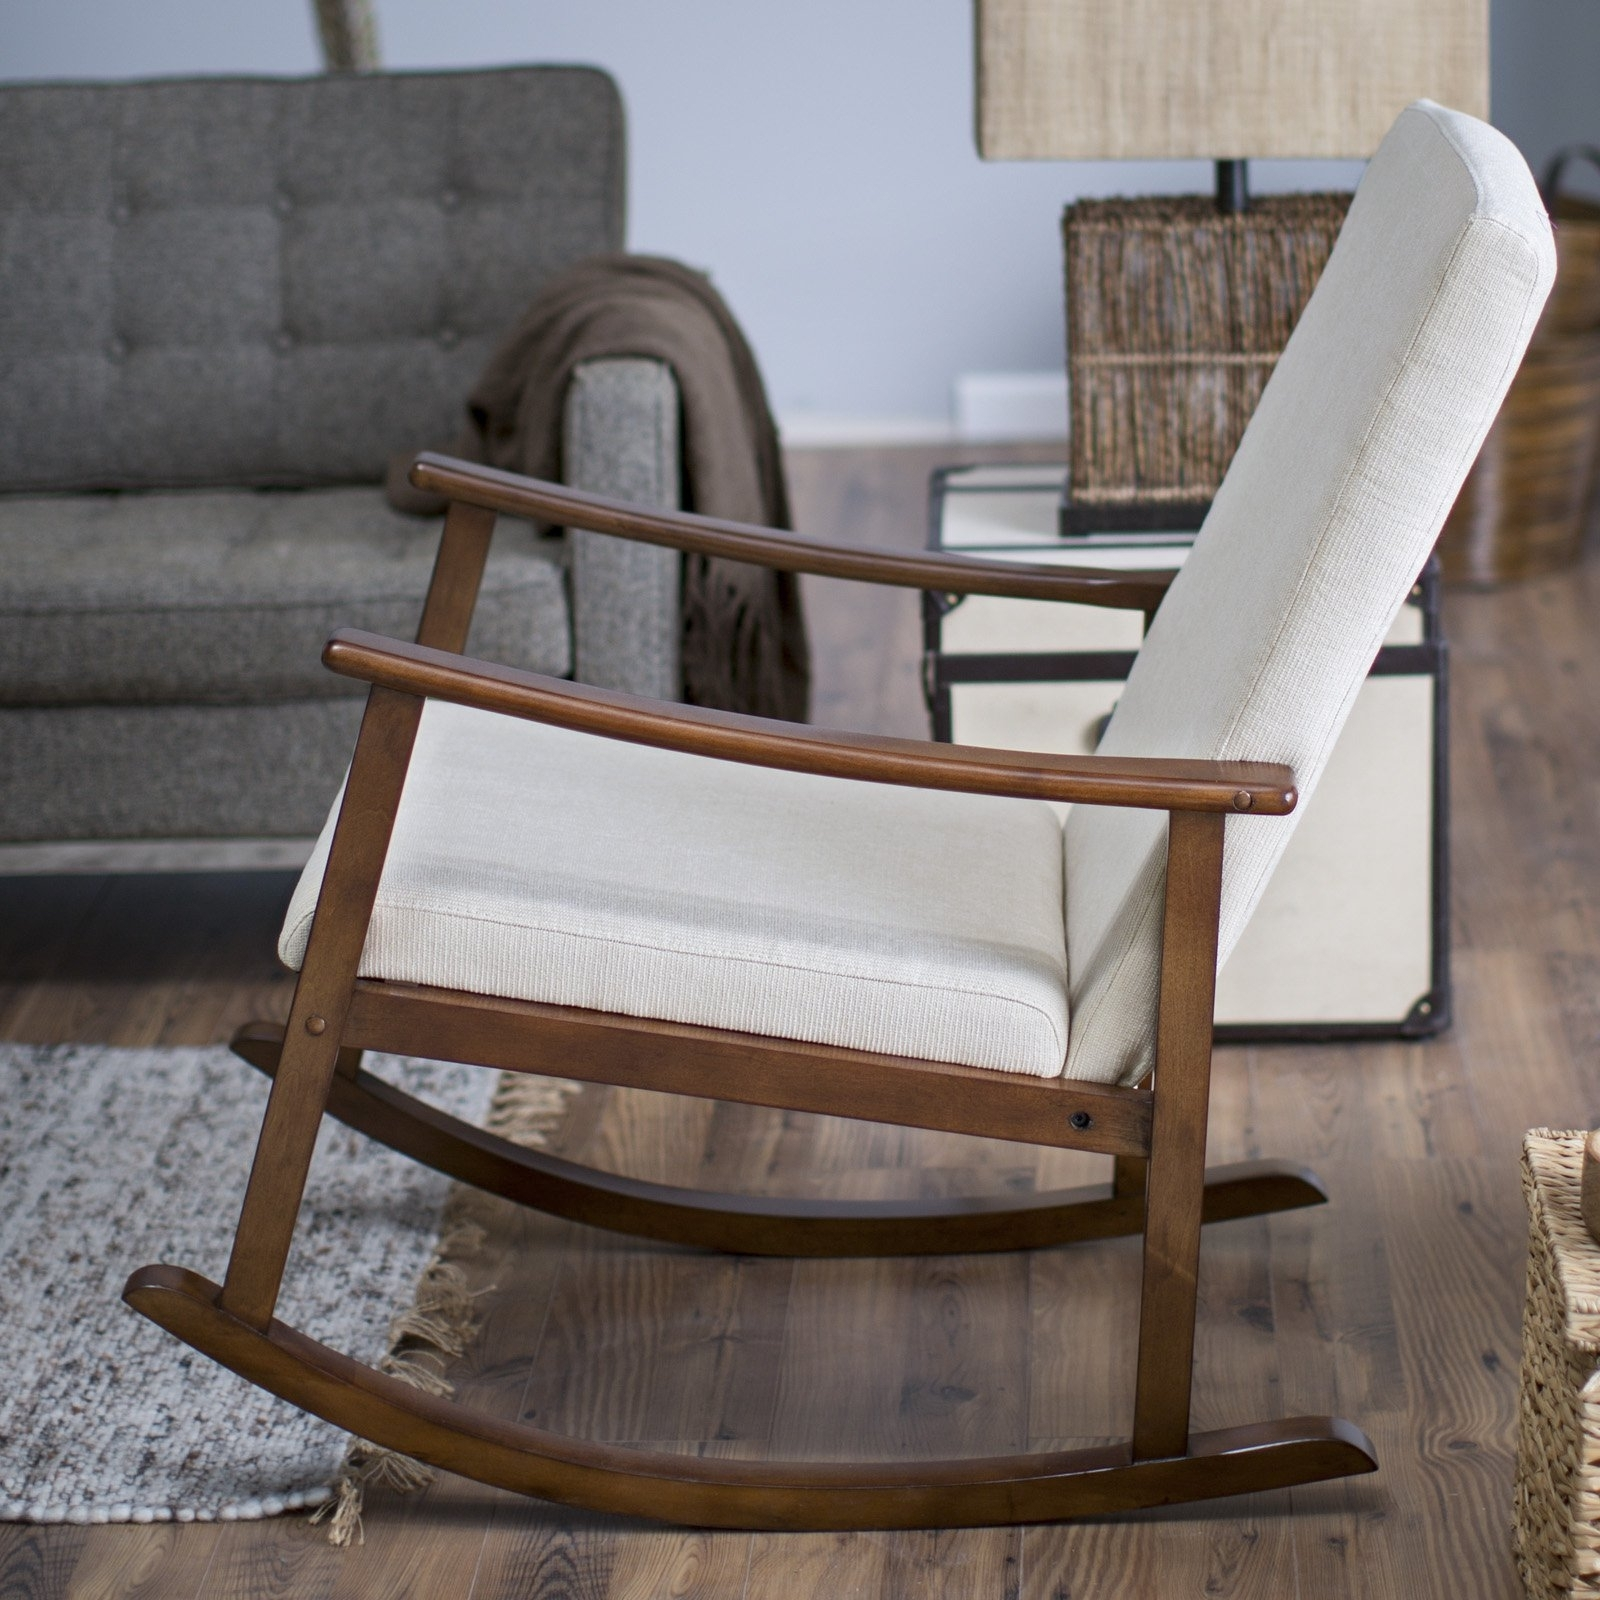 Rocking Chairs With Regard To Famous Belham Living Holden Modern Indoor Rocking Chair – Upholstered (View 16 of 20)